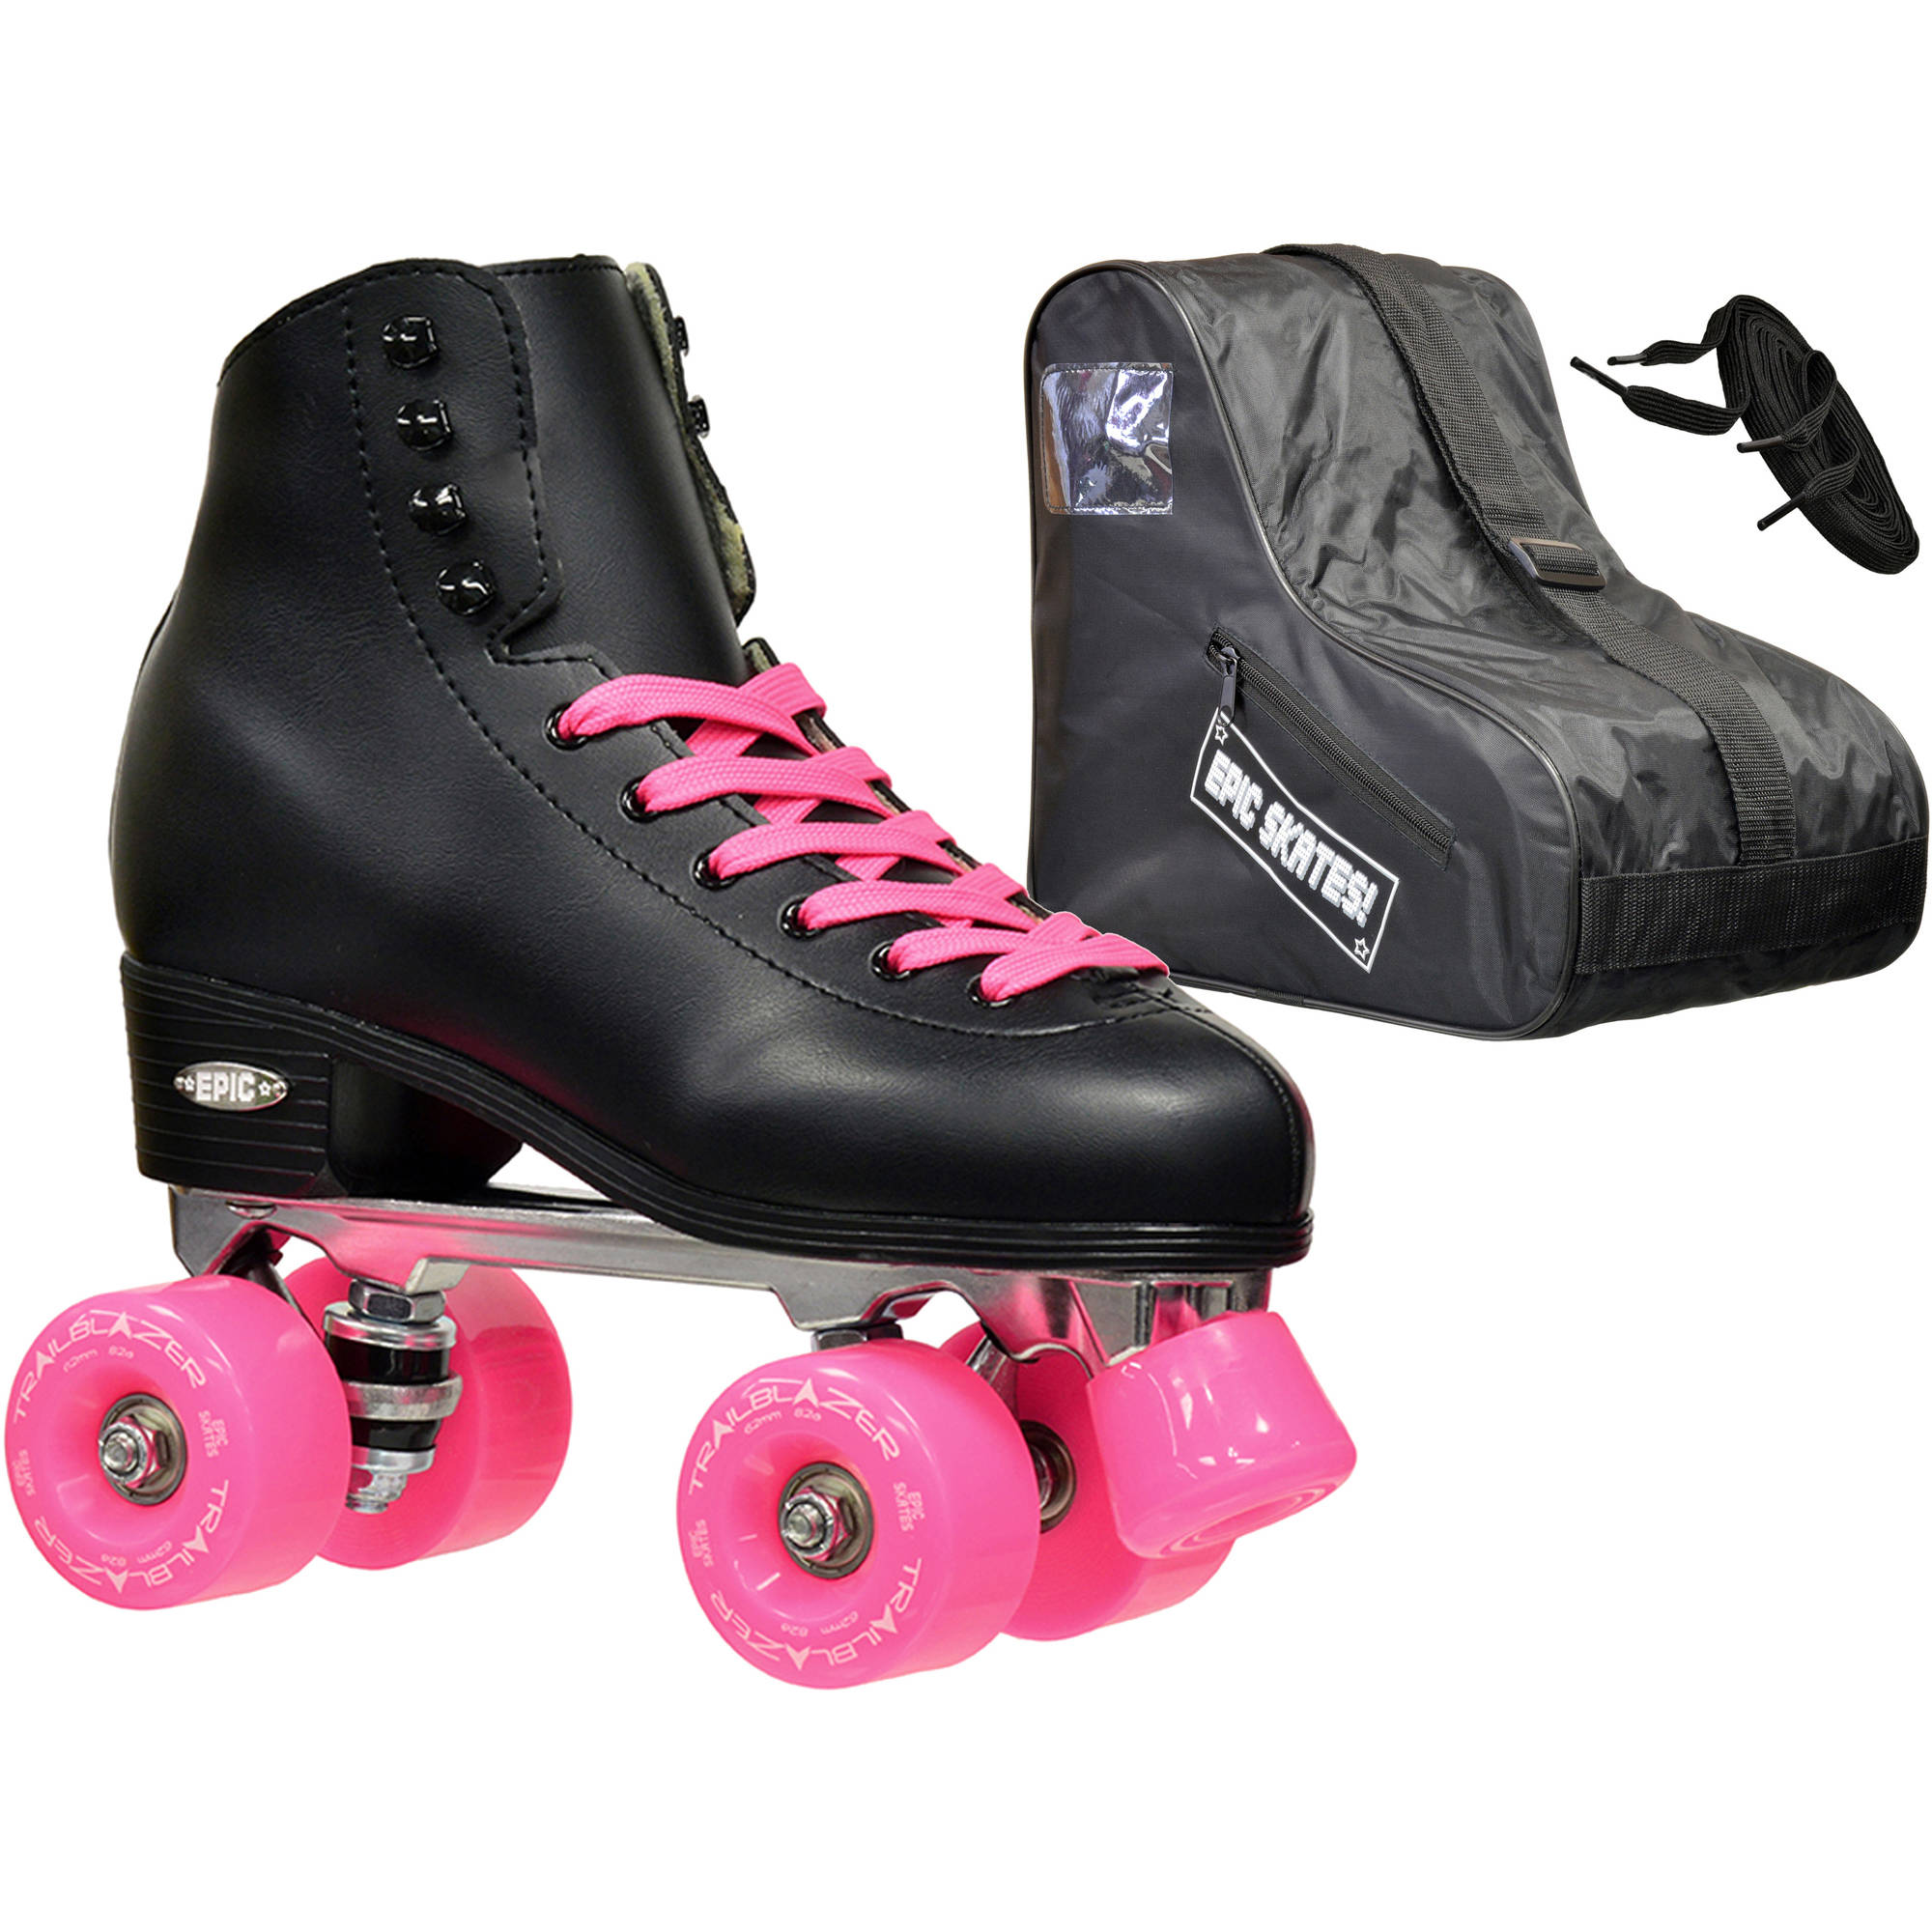 Epic Classic Black and Pink Quad Roller Skates Package by Epic Skates